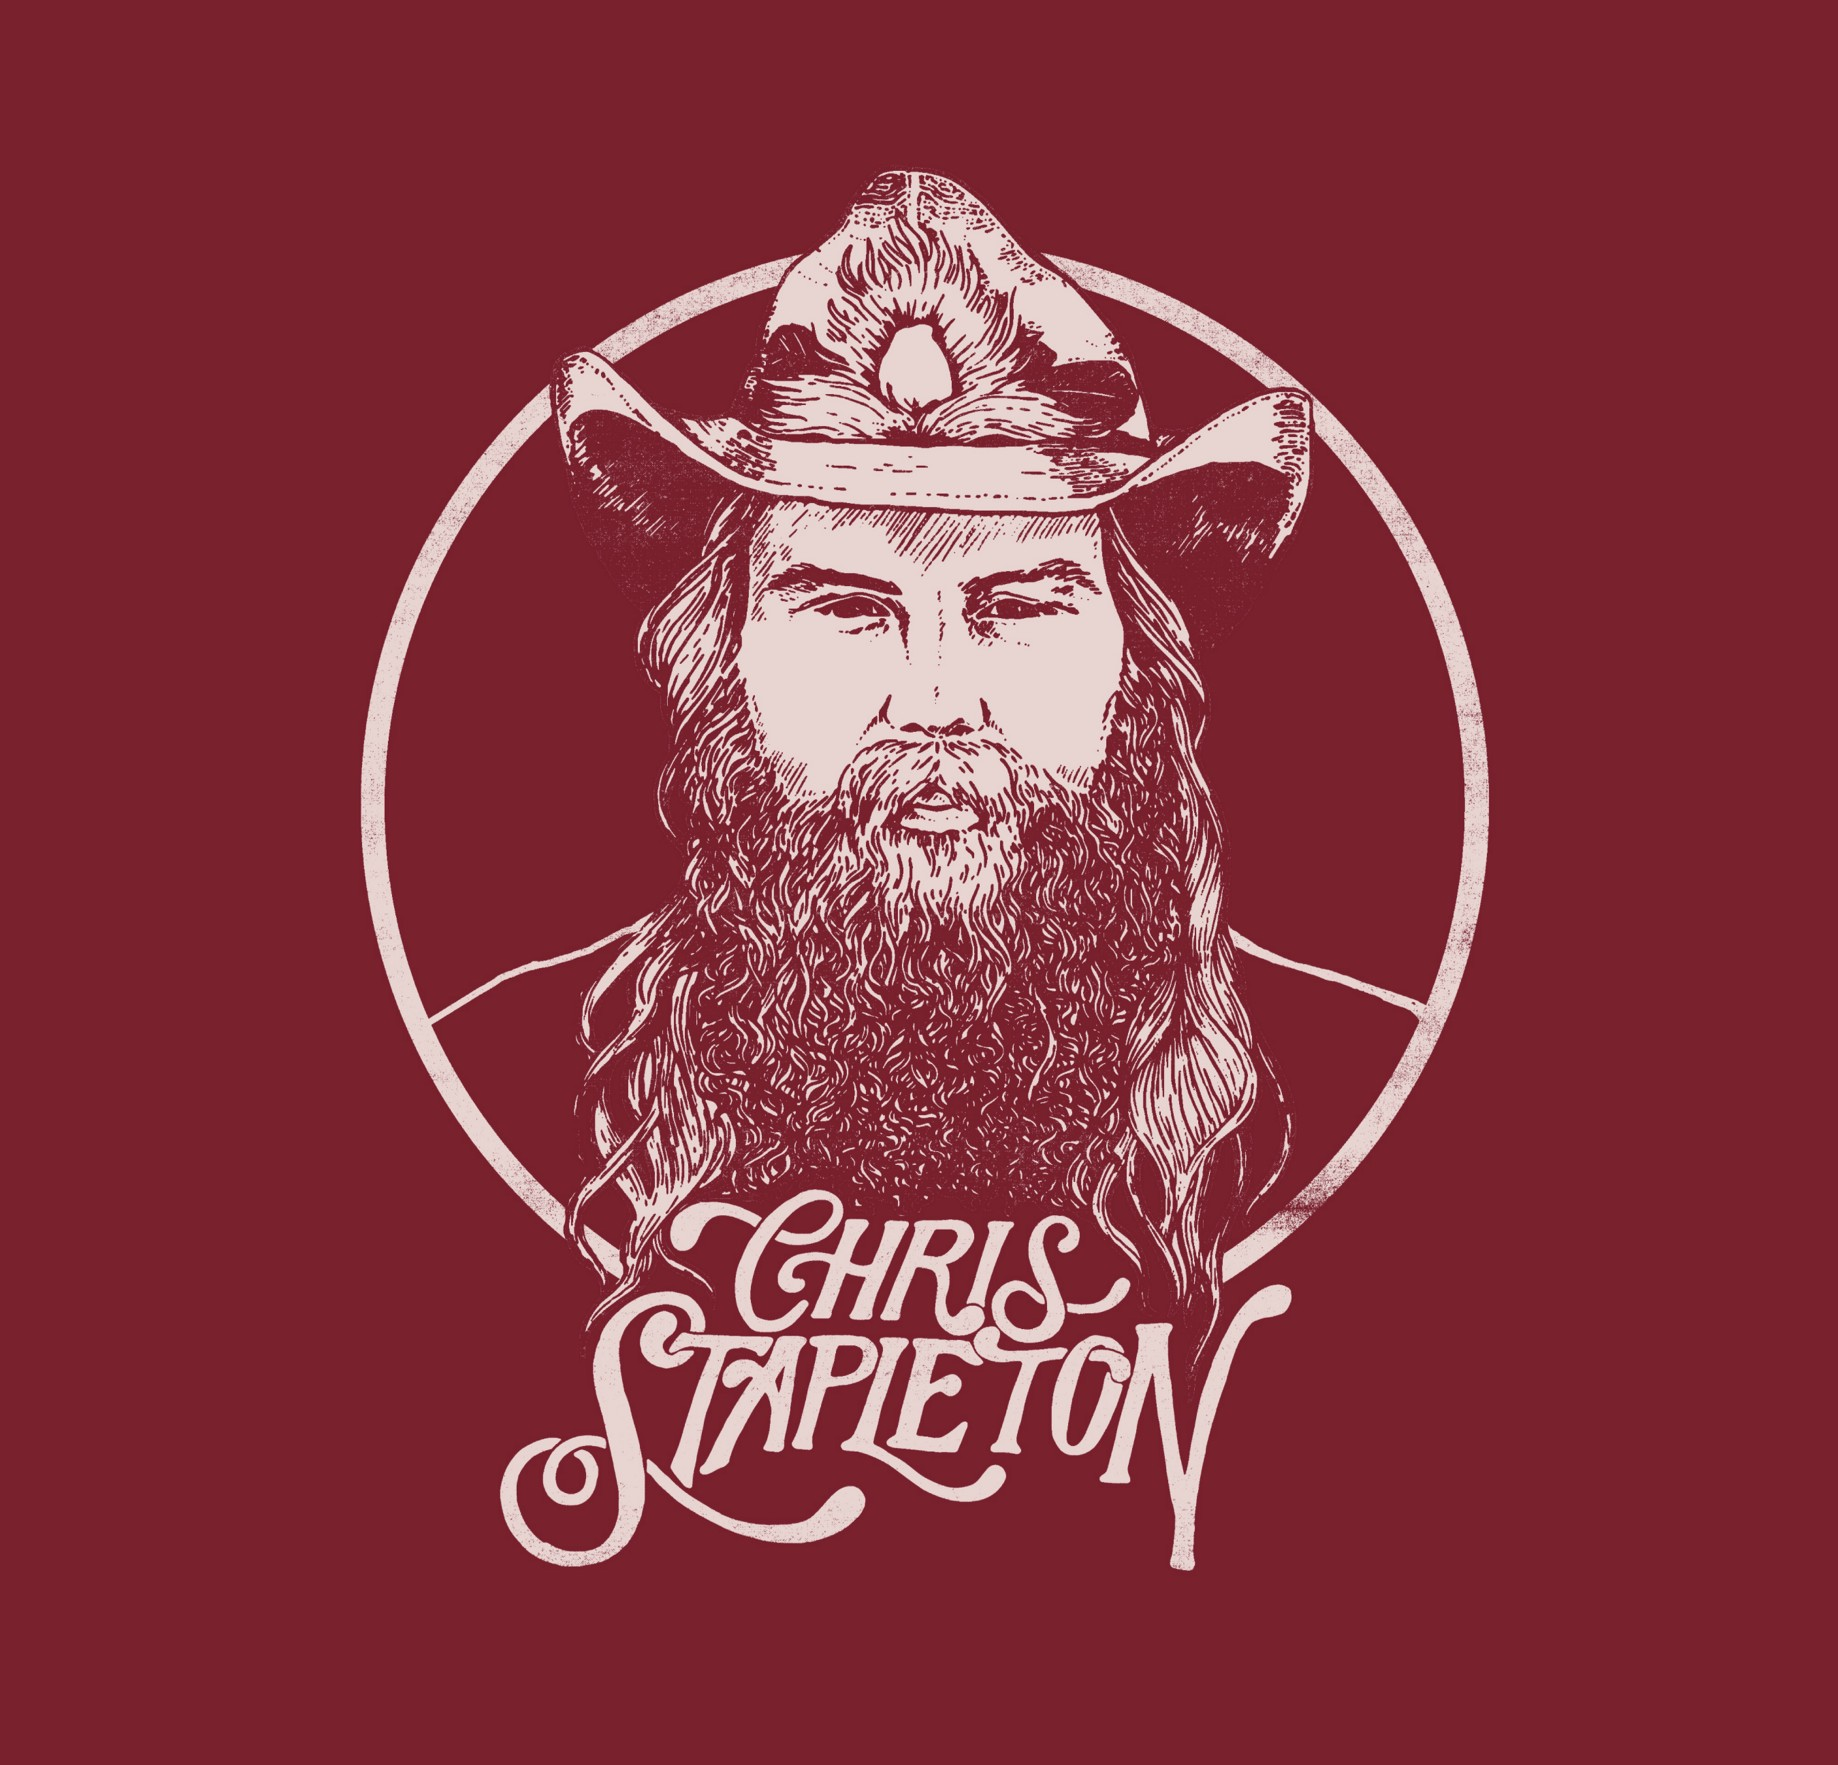 What does Chris Stapleton have in common with Etta James, Van